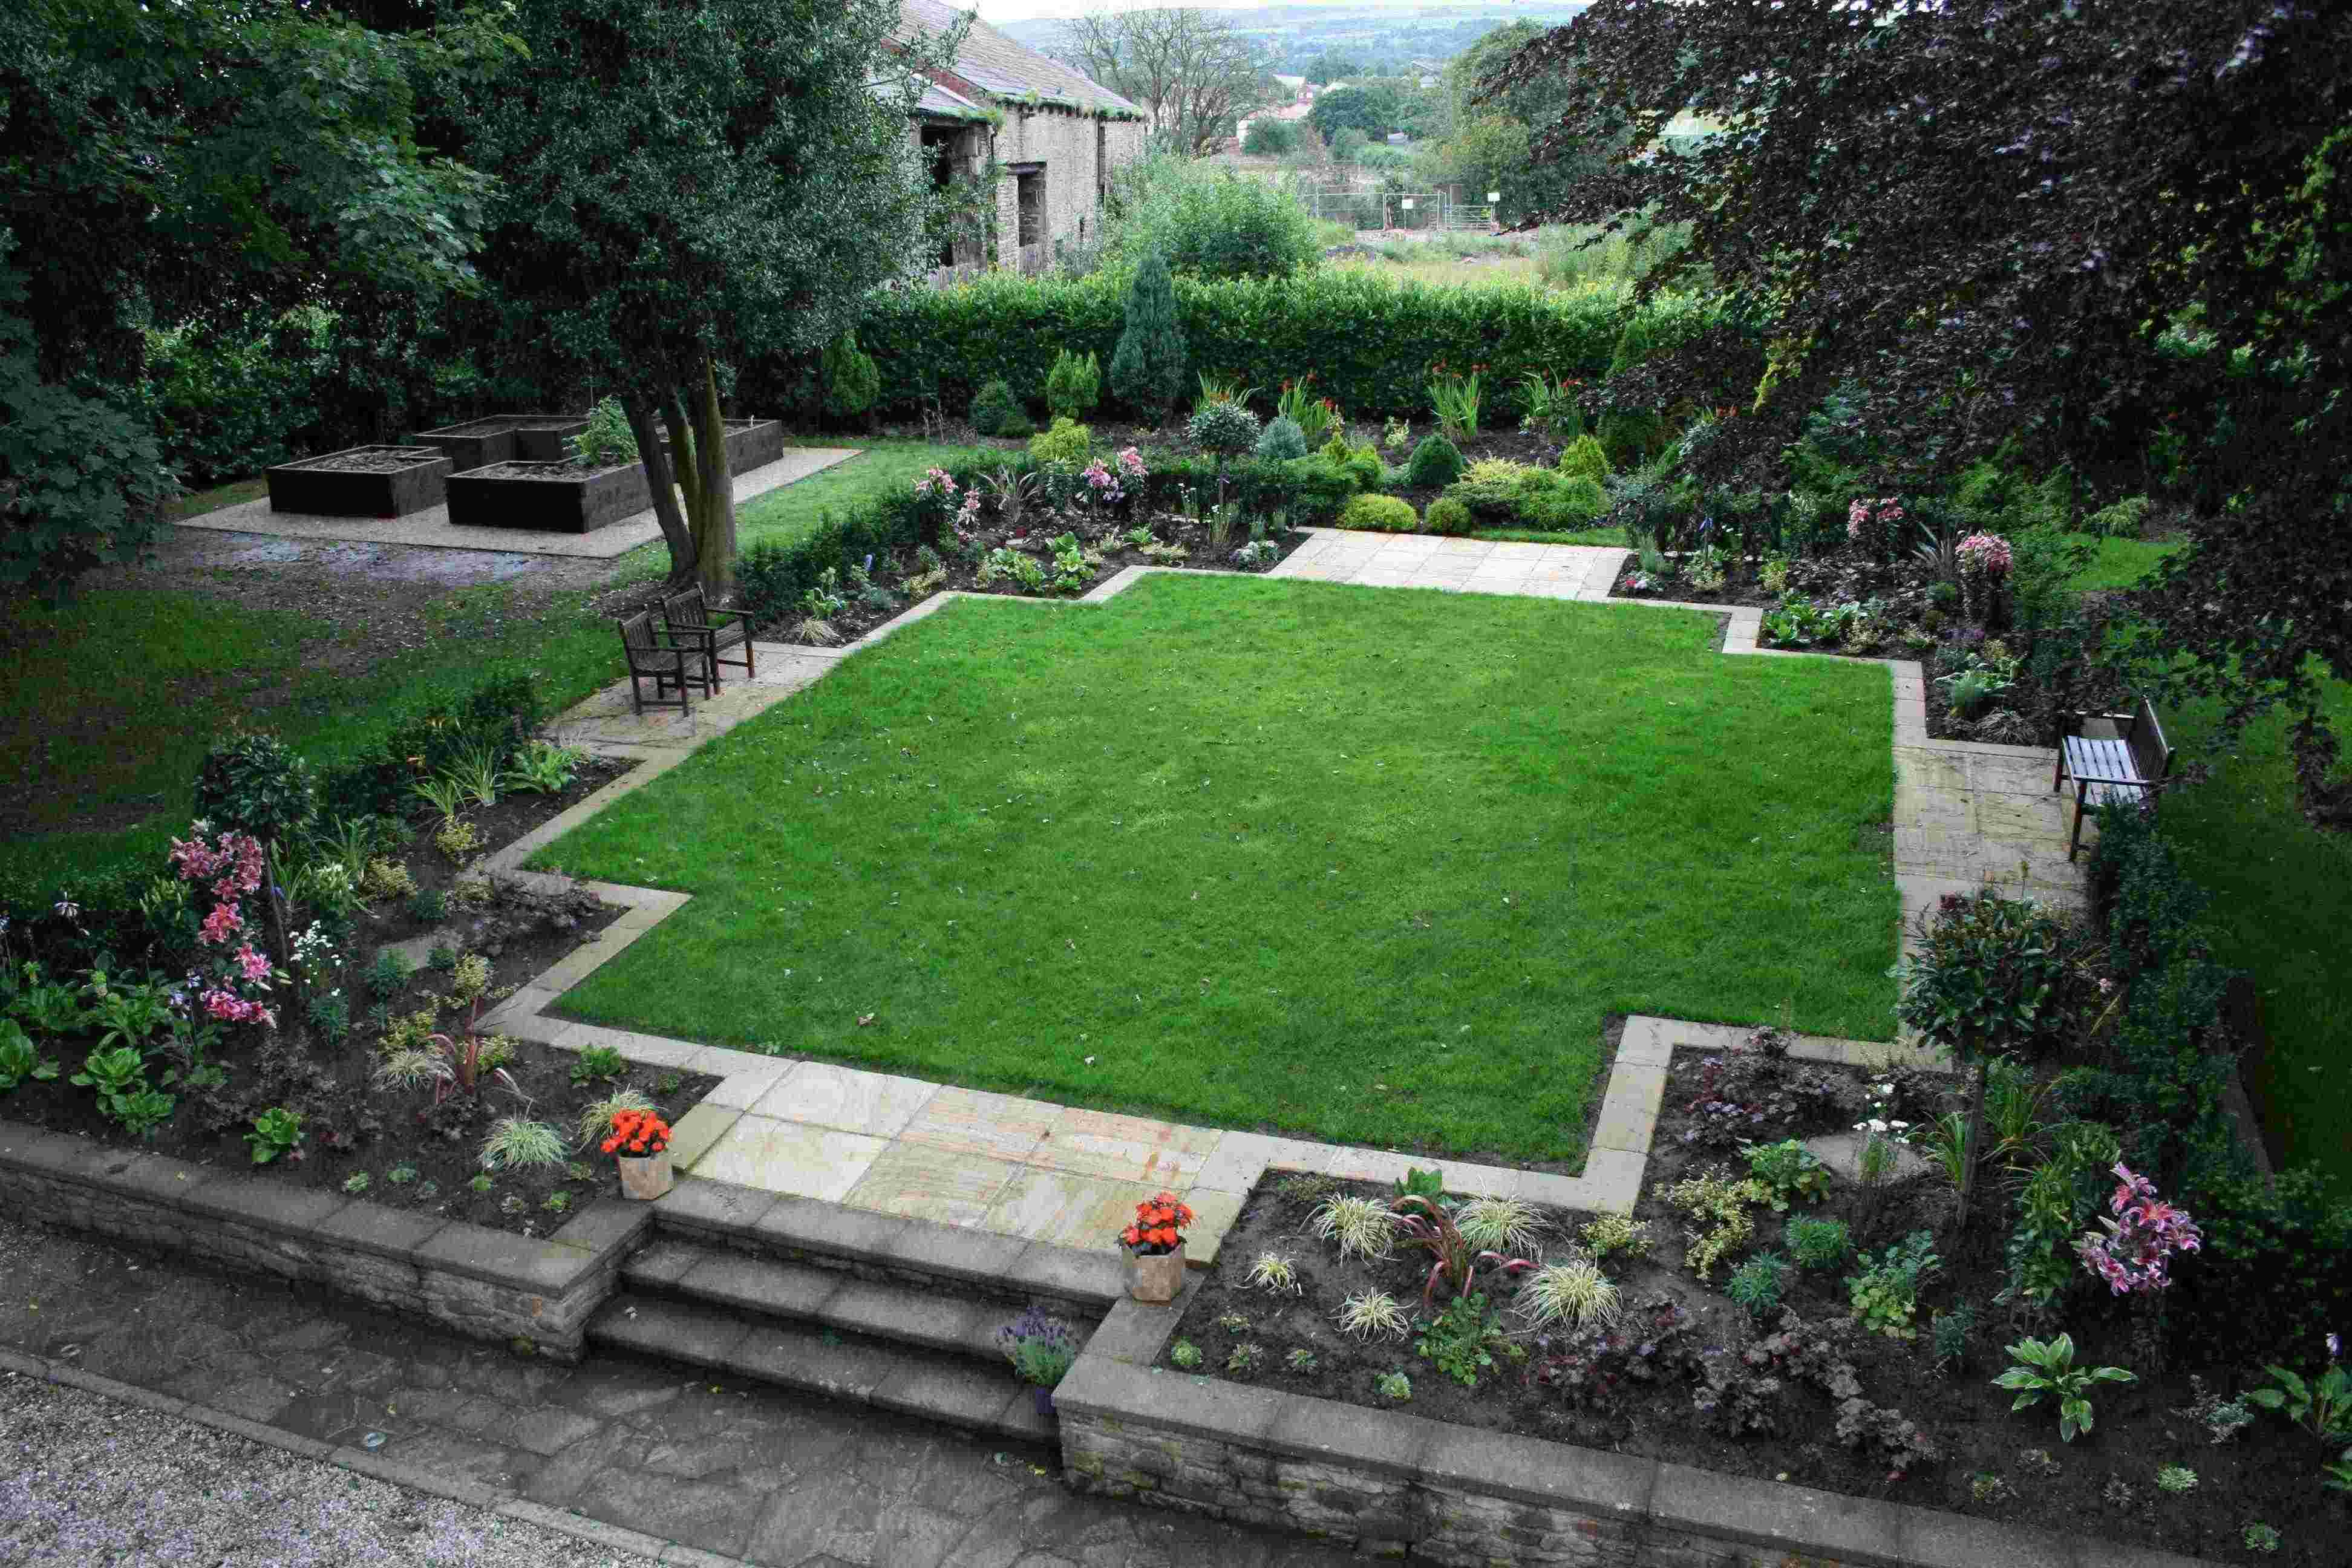 Garden landscaping in halifax huddersfield west yorkshire rs pleveys landscape gardeners for Garden designs landscaping